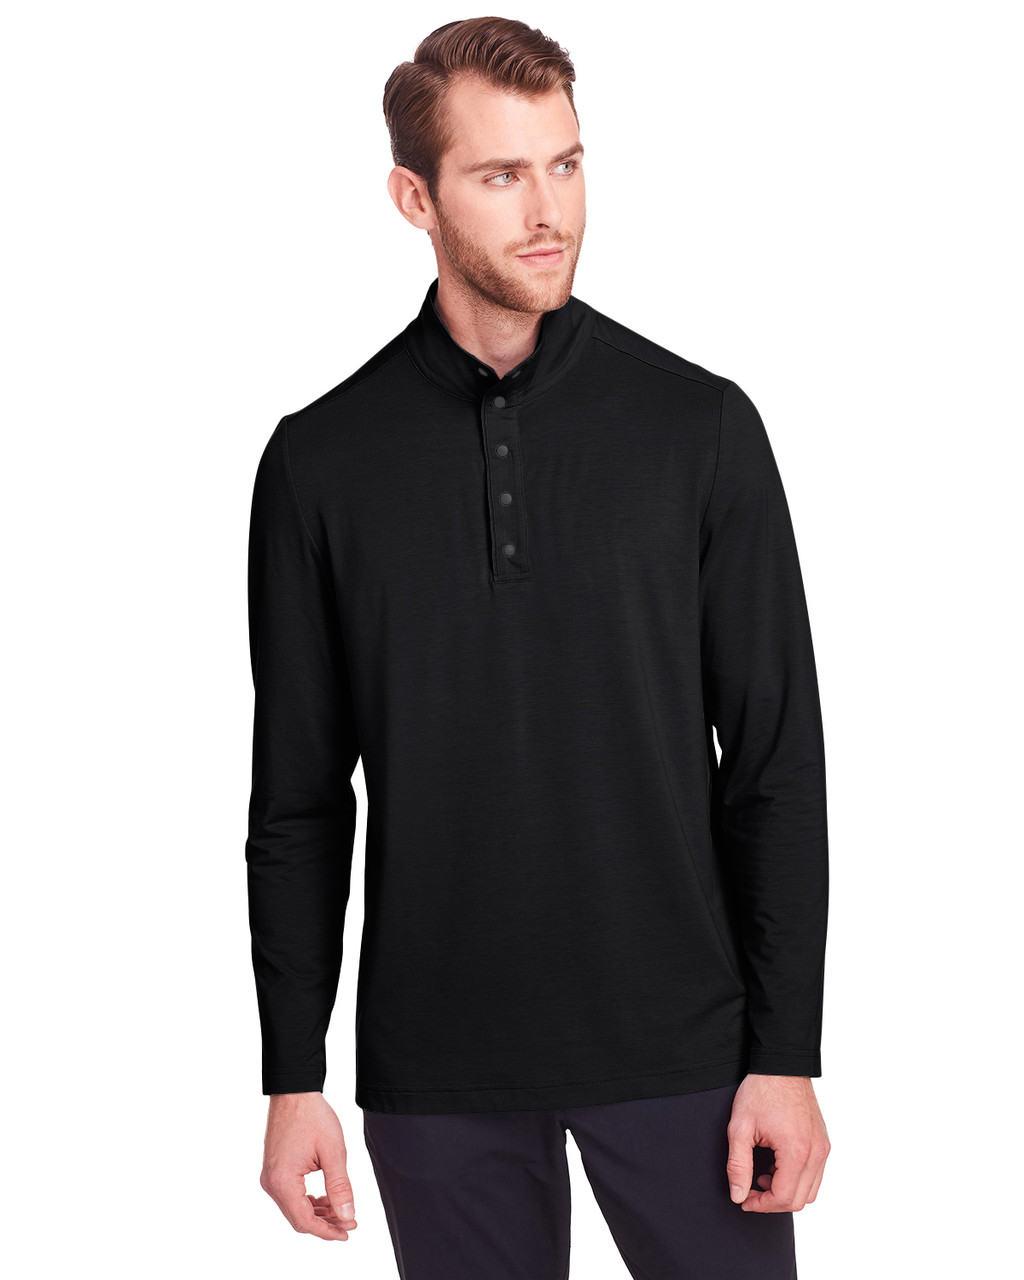 Black - NE400 North End Men's Jaq Snap-Up Stretch Performance Pullover Long Sleeve Shirt | BlankClothing.ca